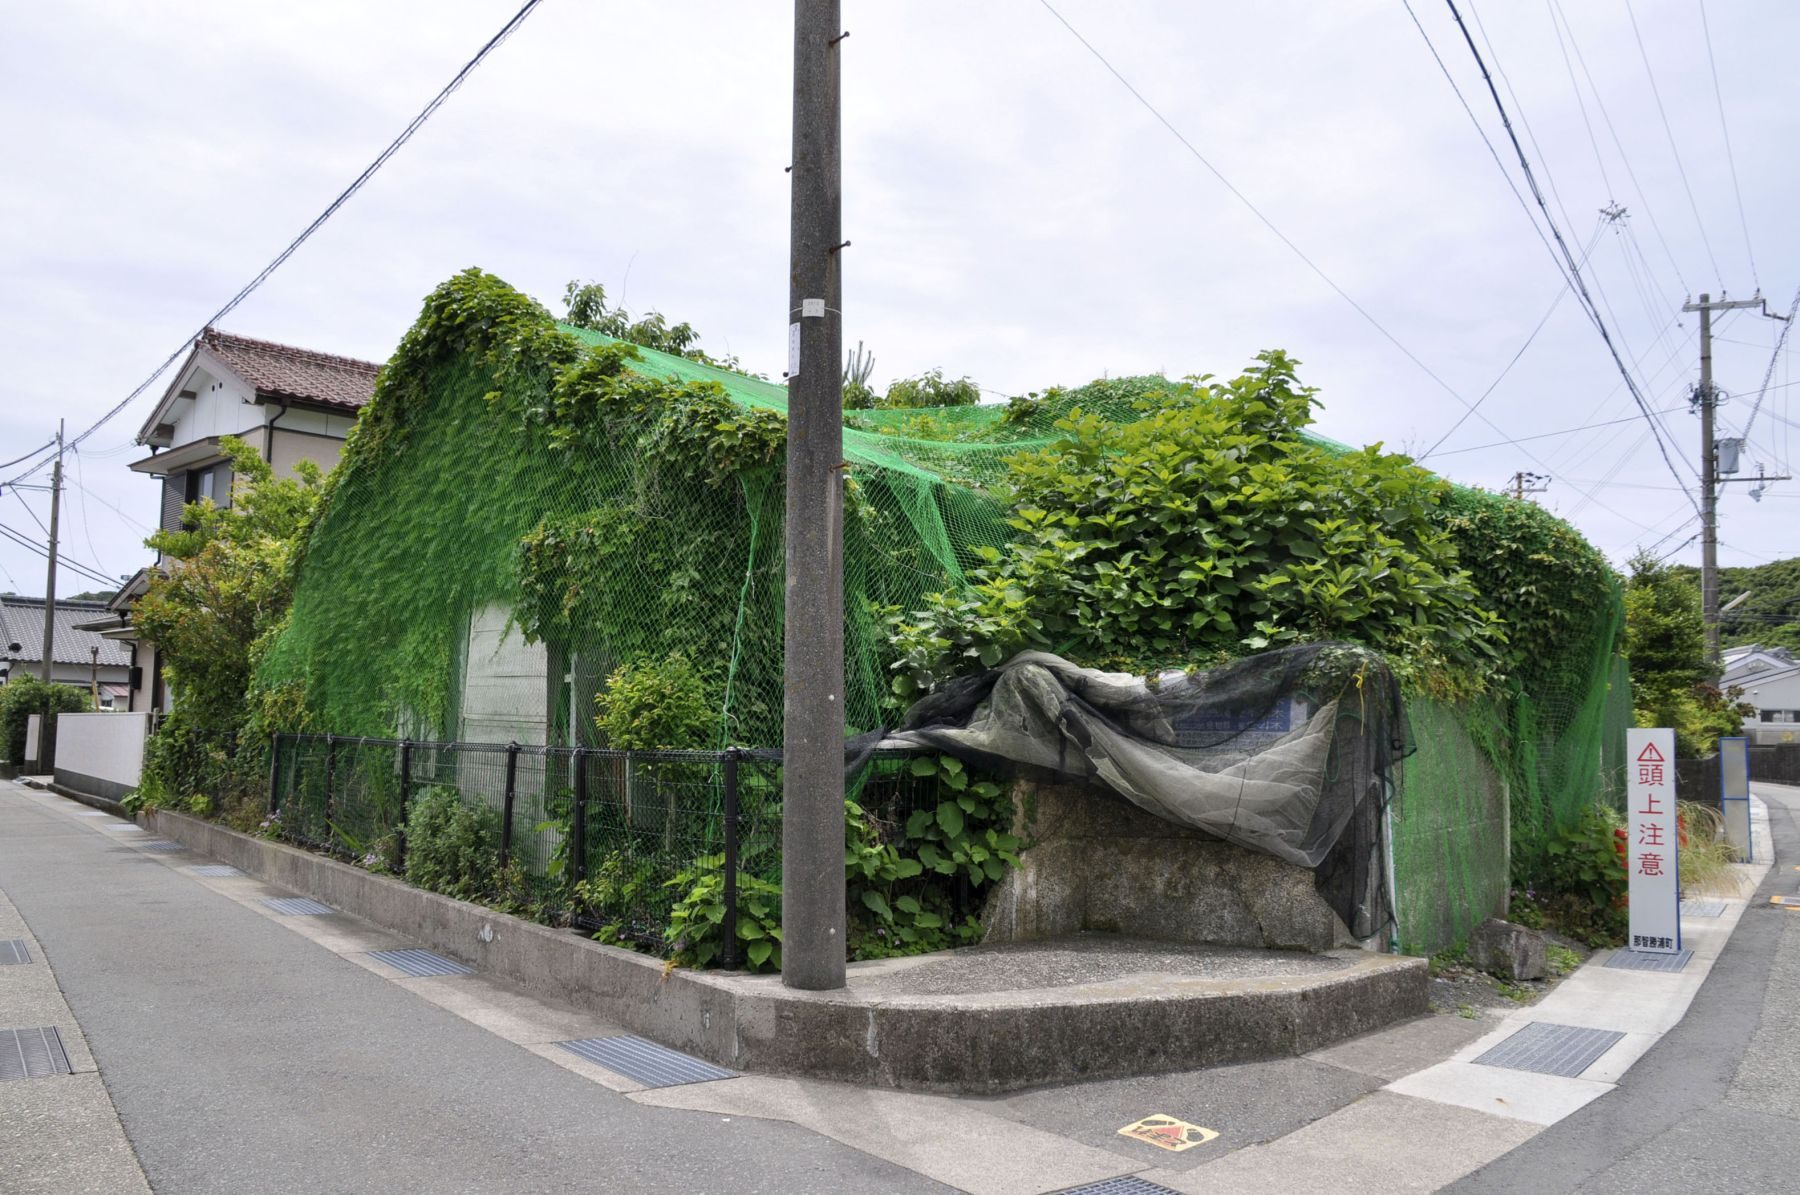 The tumble down houses in Japan 002